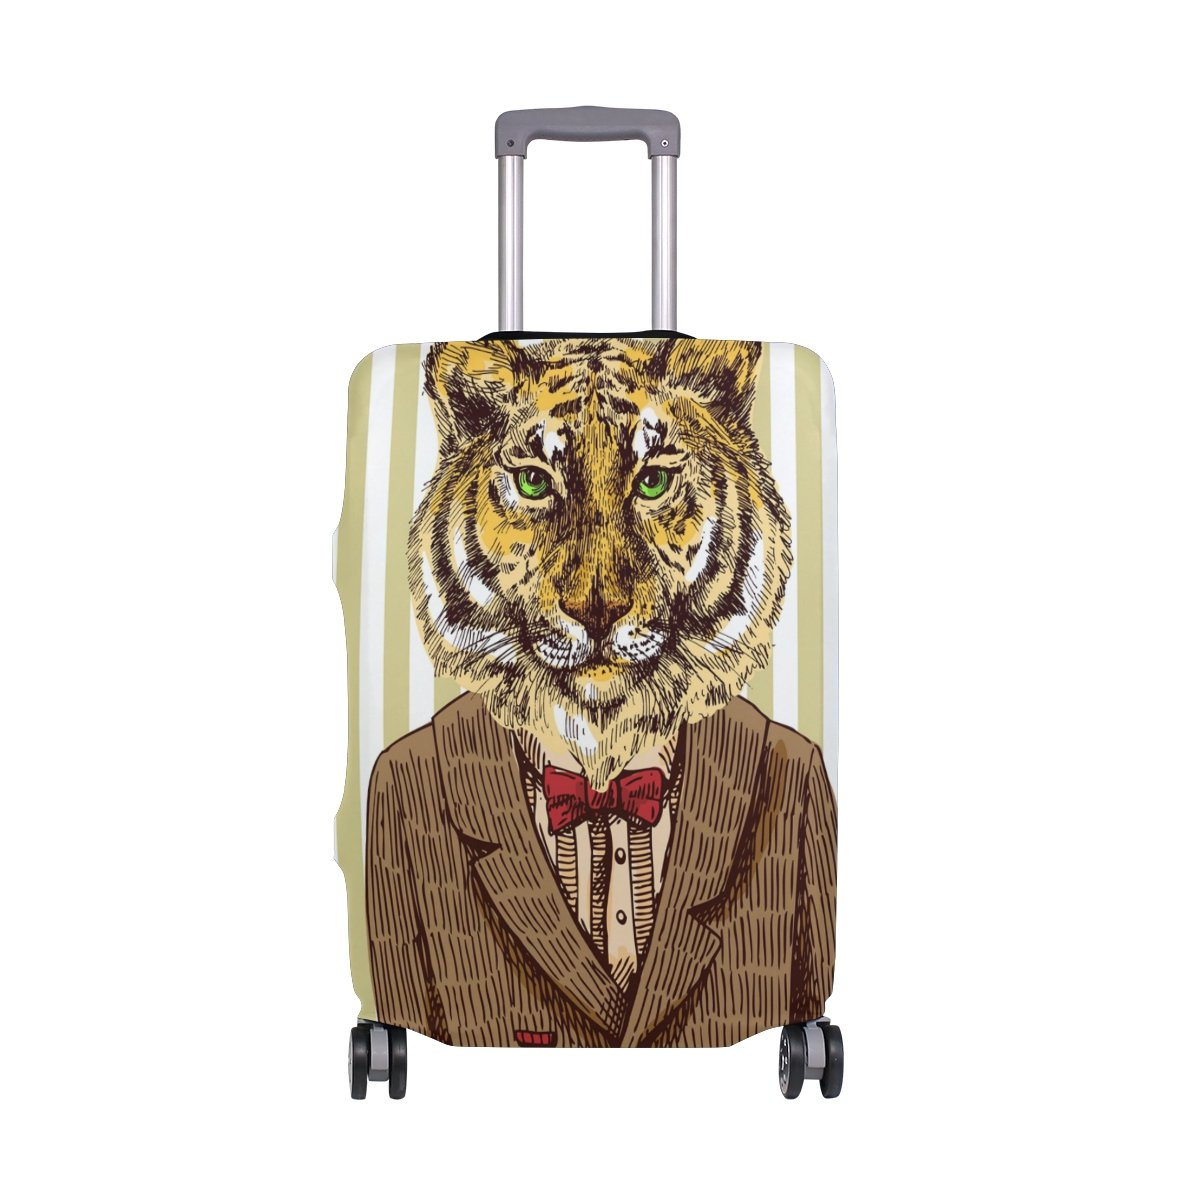 ALAZA Jacket Tiger Stripe Luggage Cover Fits 18-22 Inch Suitcase Spandex Travel Protector S